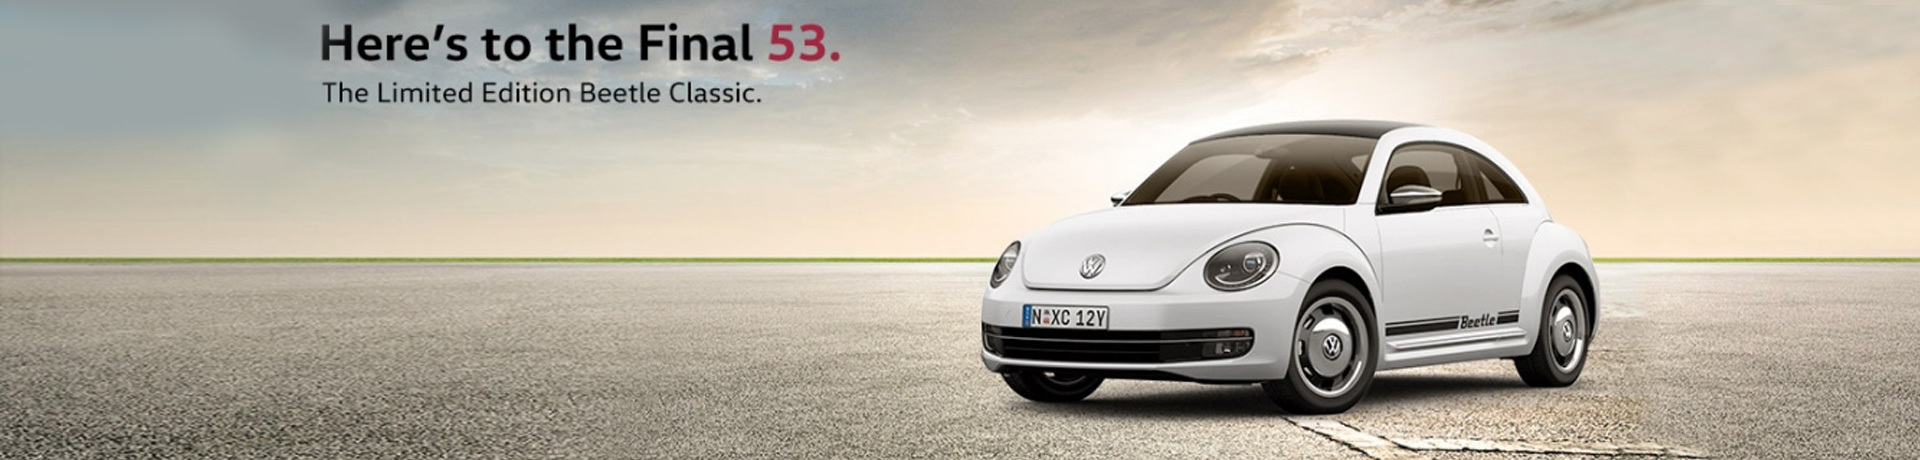 Limited Edition Volkswagen Beetle Classic